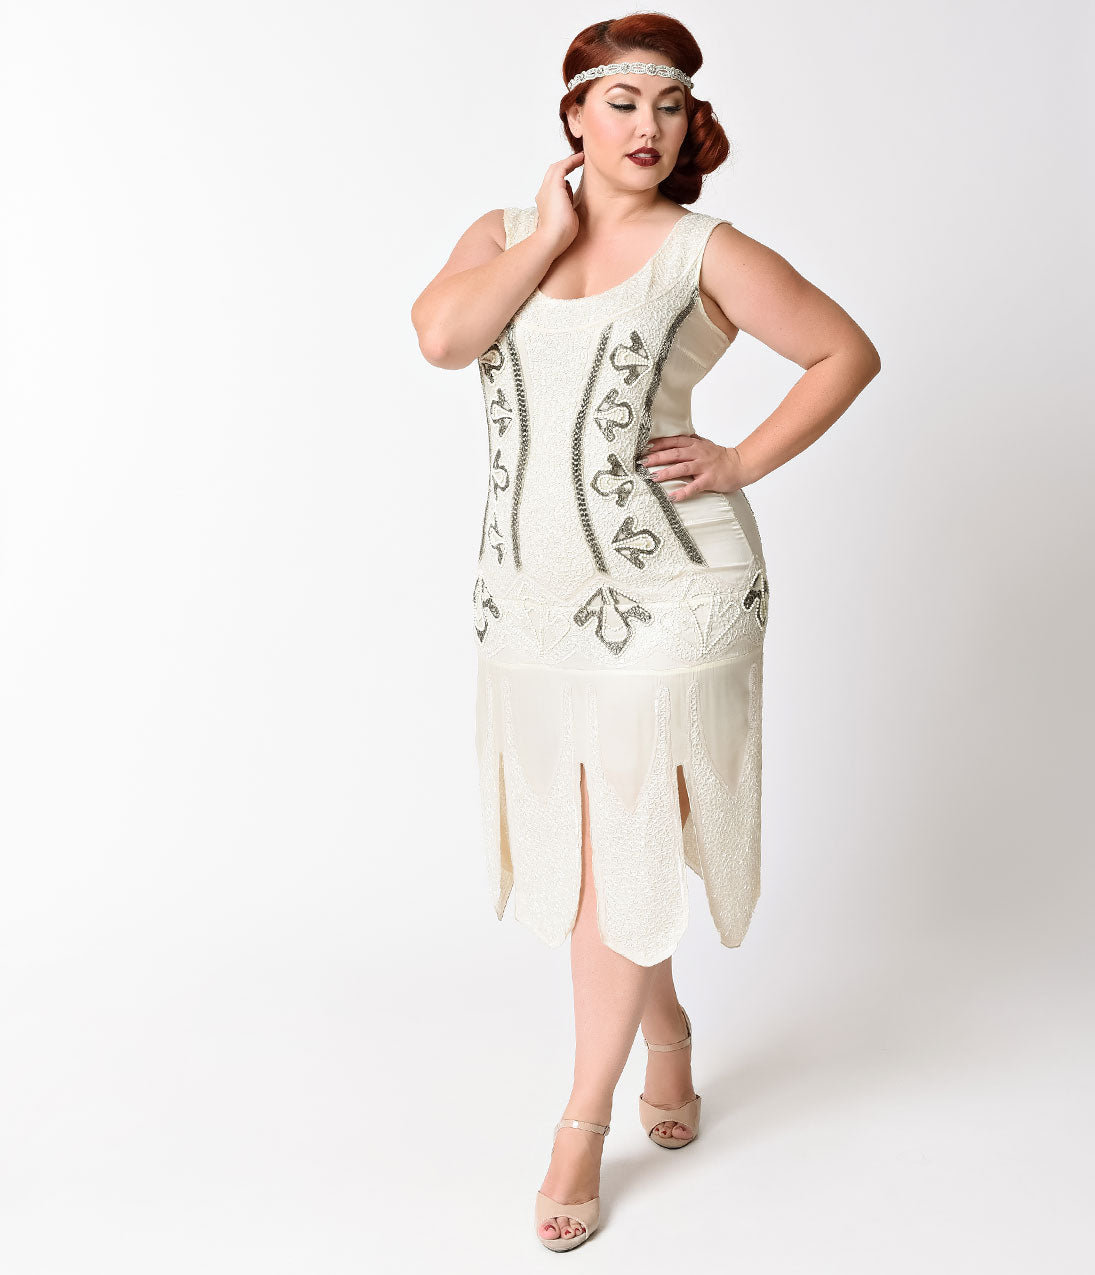 Vintage Inspired Wedding Dress | Vintage Style Wedding Dresses Unique Vintage Plus Size 1920S Antique Ivory Beaded Sateen Eleanor Flapper Dress $53.00 AT vintagedancer.com